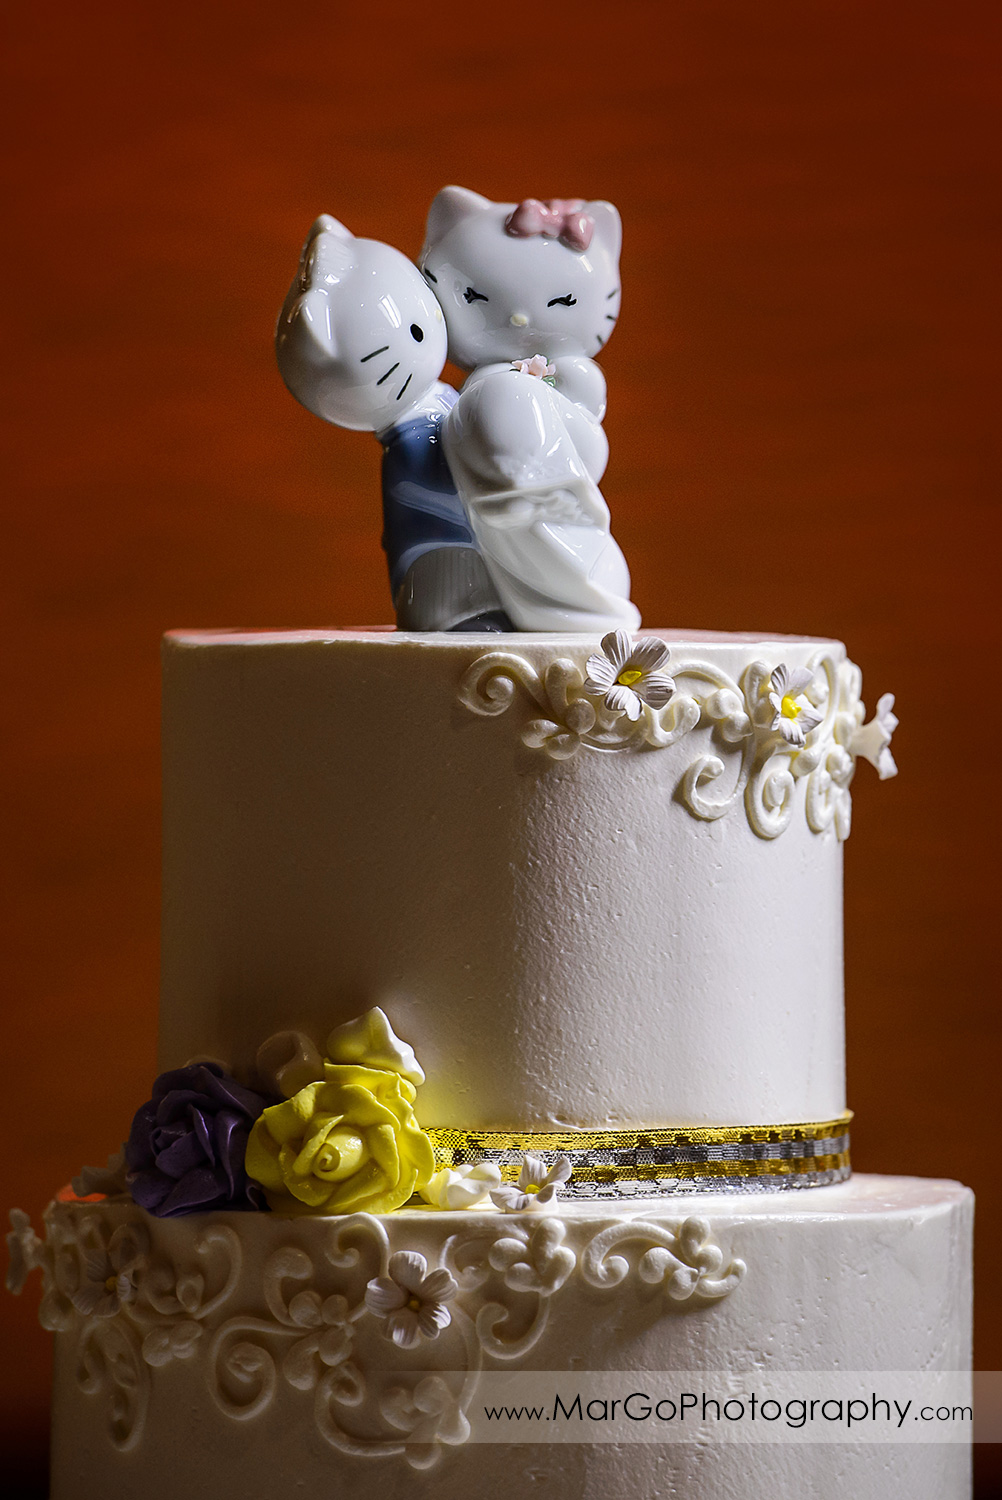 details of wedding cake at Hilton San Francisco Airport Bayfront in Burlingame